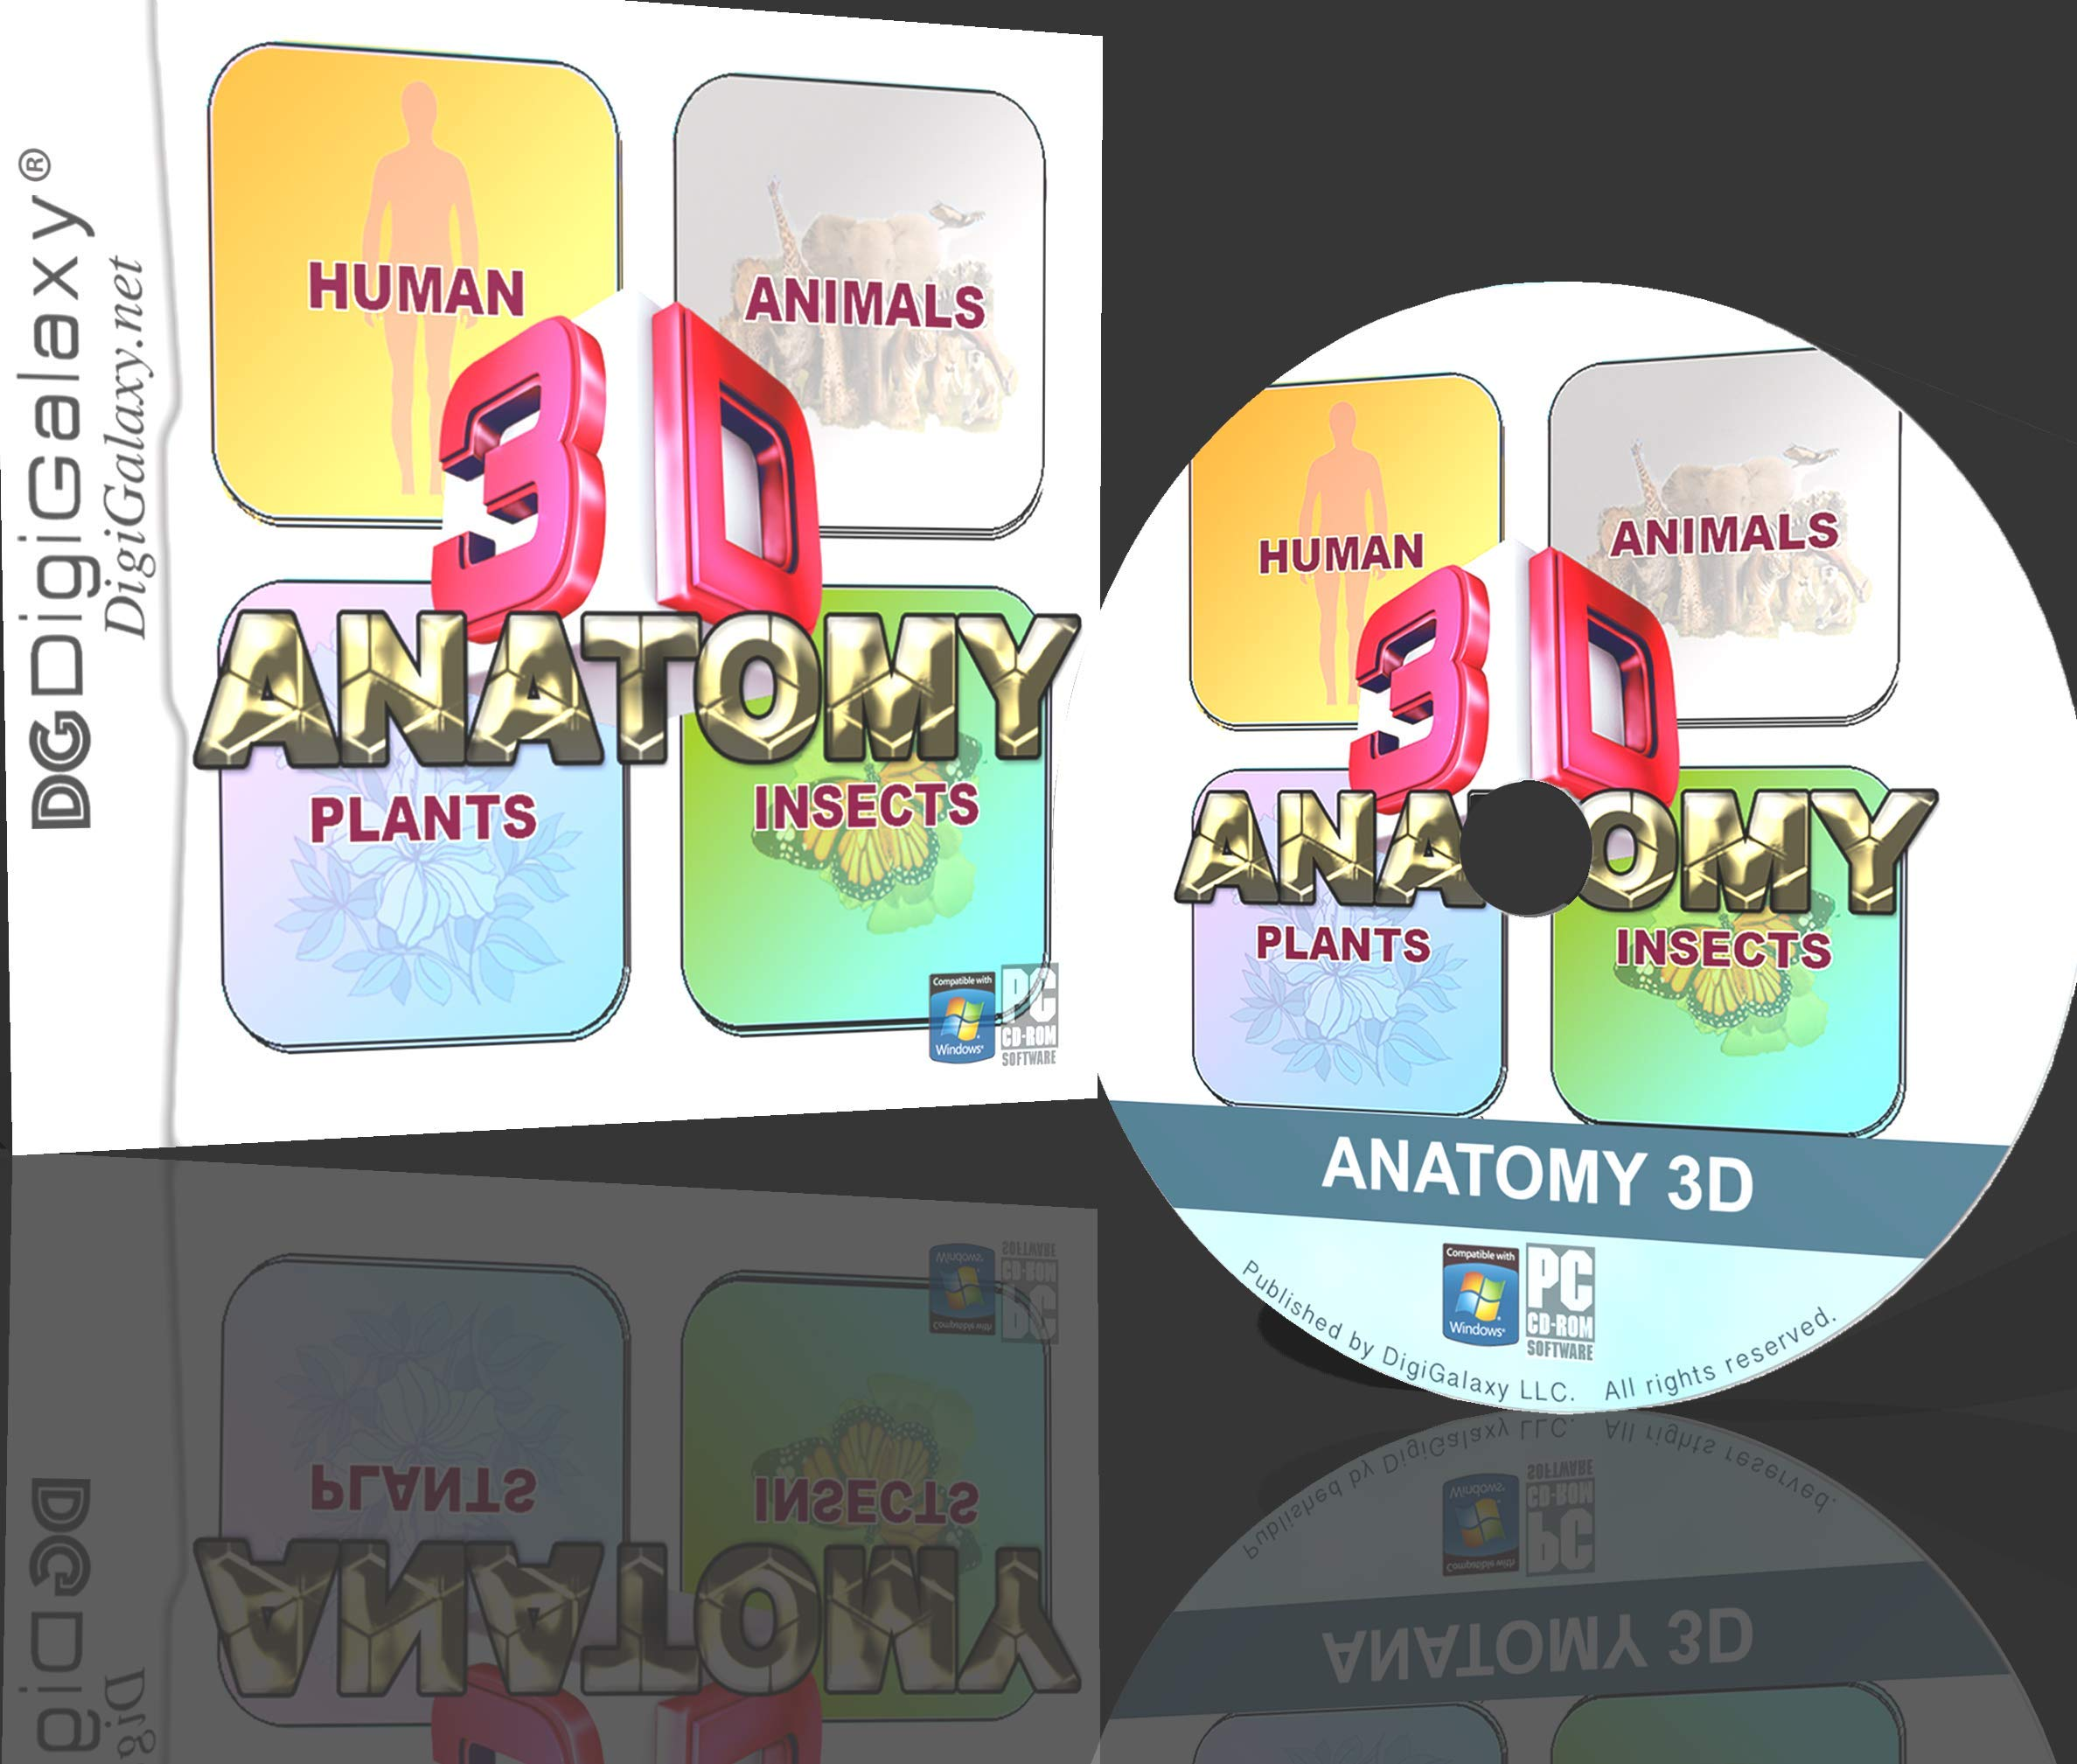 ANATOMY 3D - Human Anatomy, Animal, Plant, Insect (Windows10 compatible) by DigiGalaxy